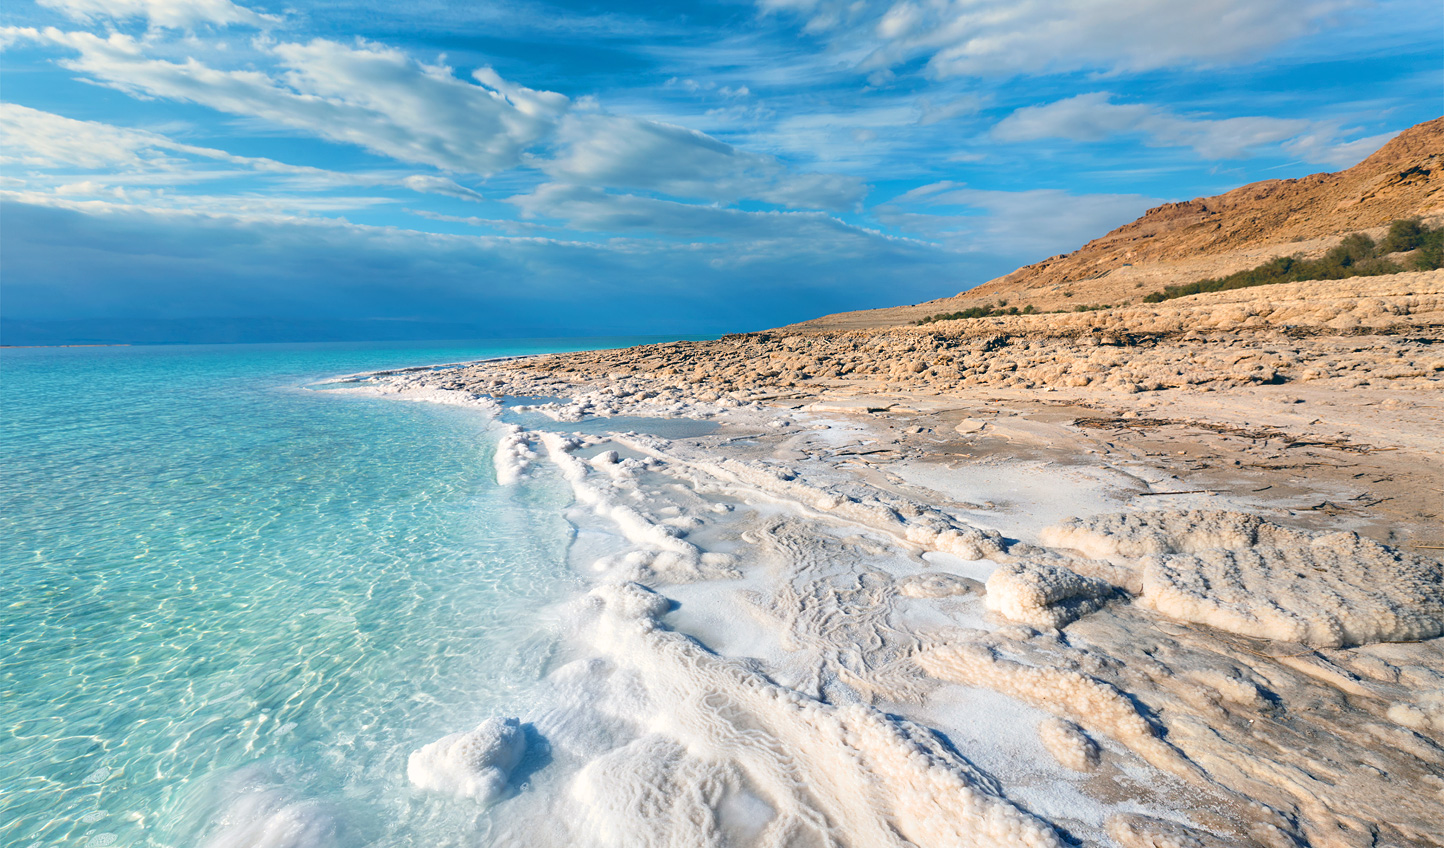 Wash up on the salt ringed shores of the Dead Sea